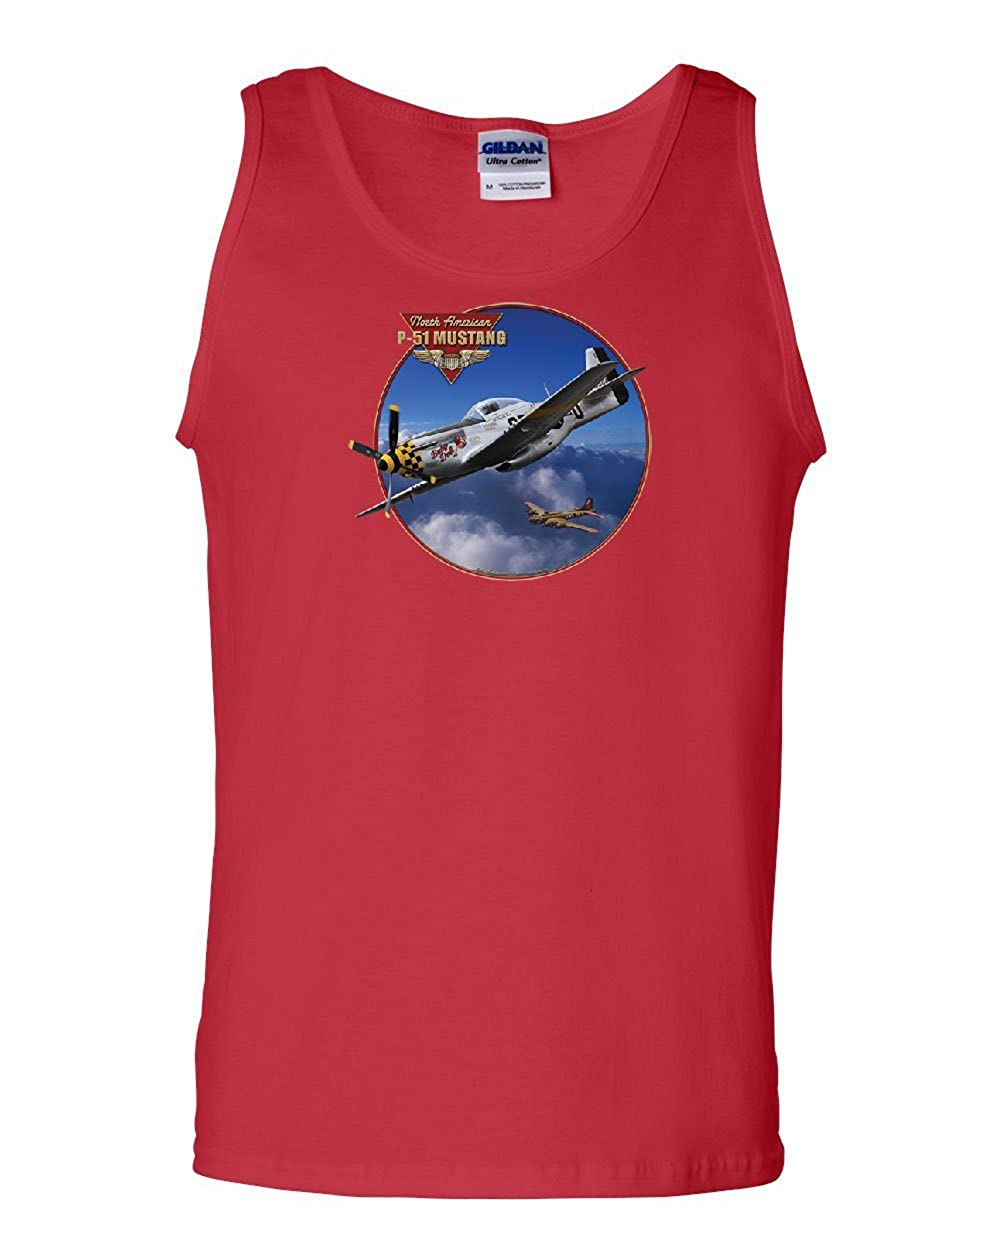 P-51 Mustang Tank Top WW2 American Fighter Aircraft Air Force Sleeveless